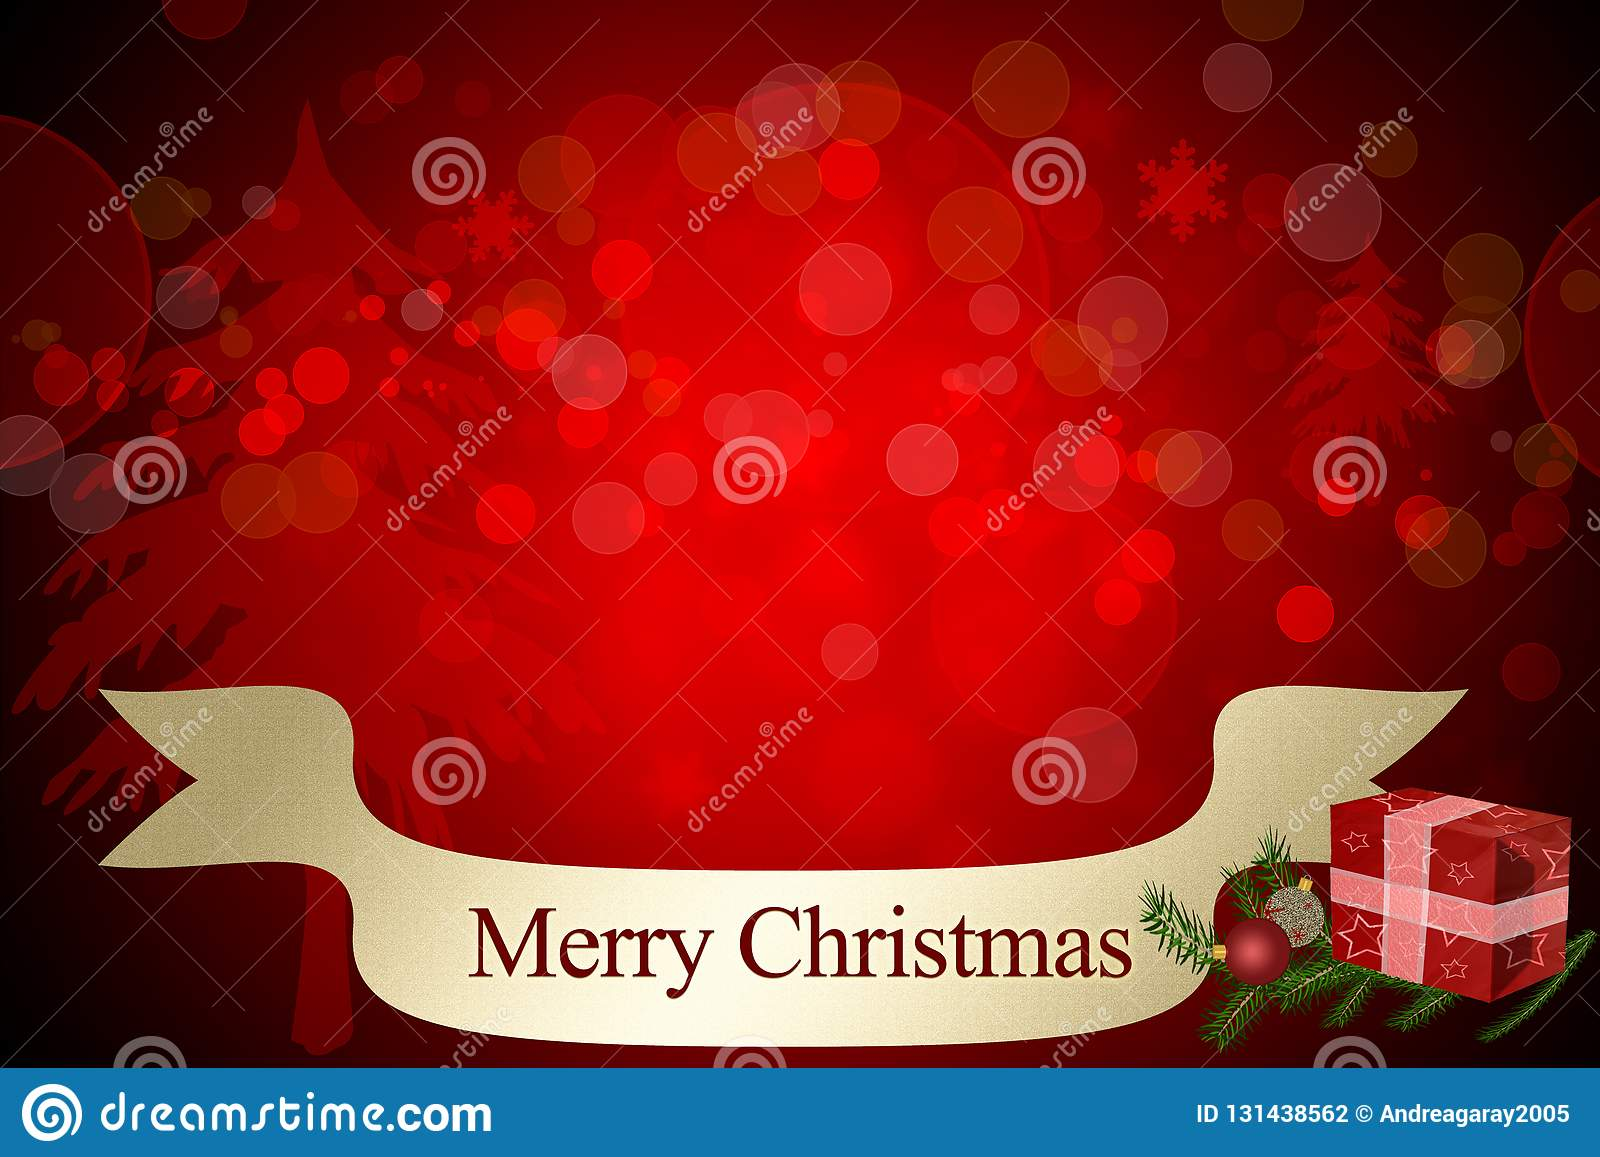 Merry Christmas Invitation Card With Bokeh Red Background